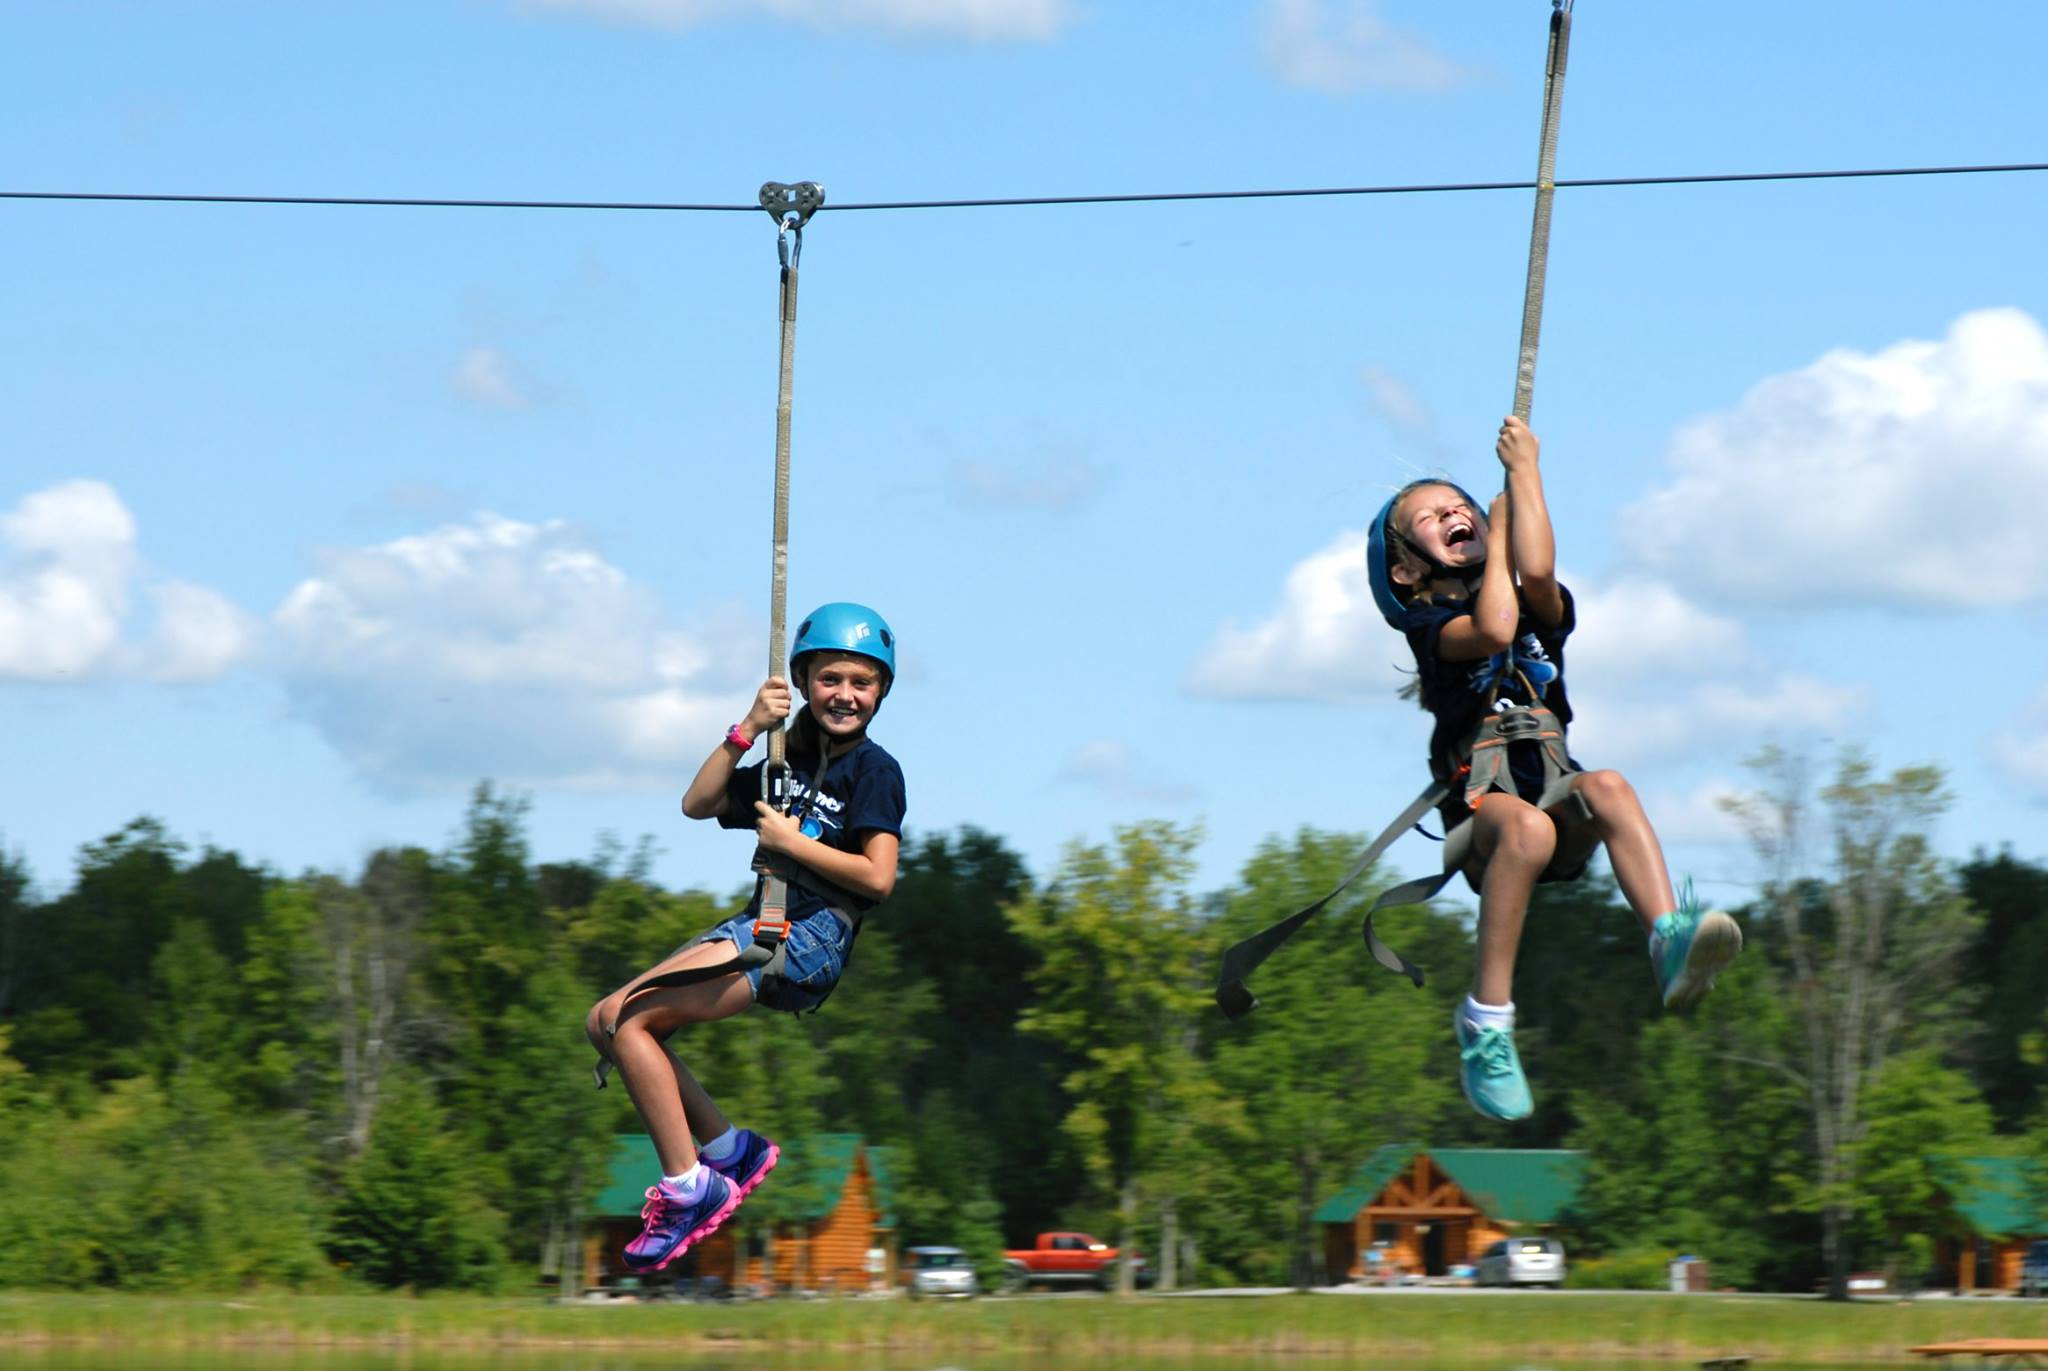 two children laughing on while on a zipline